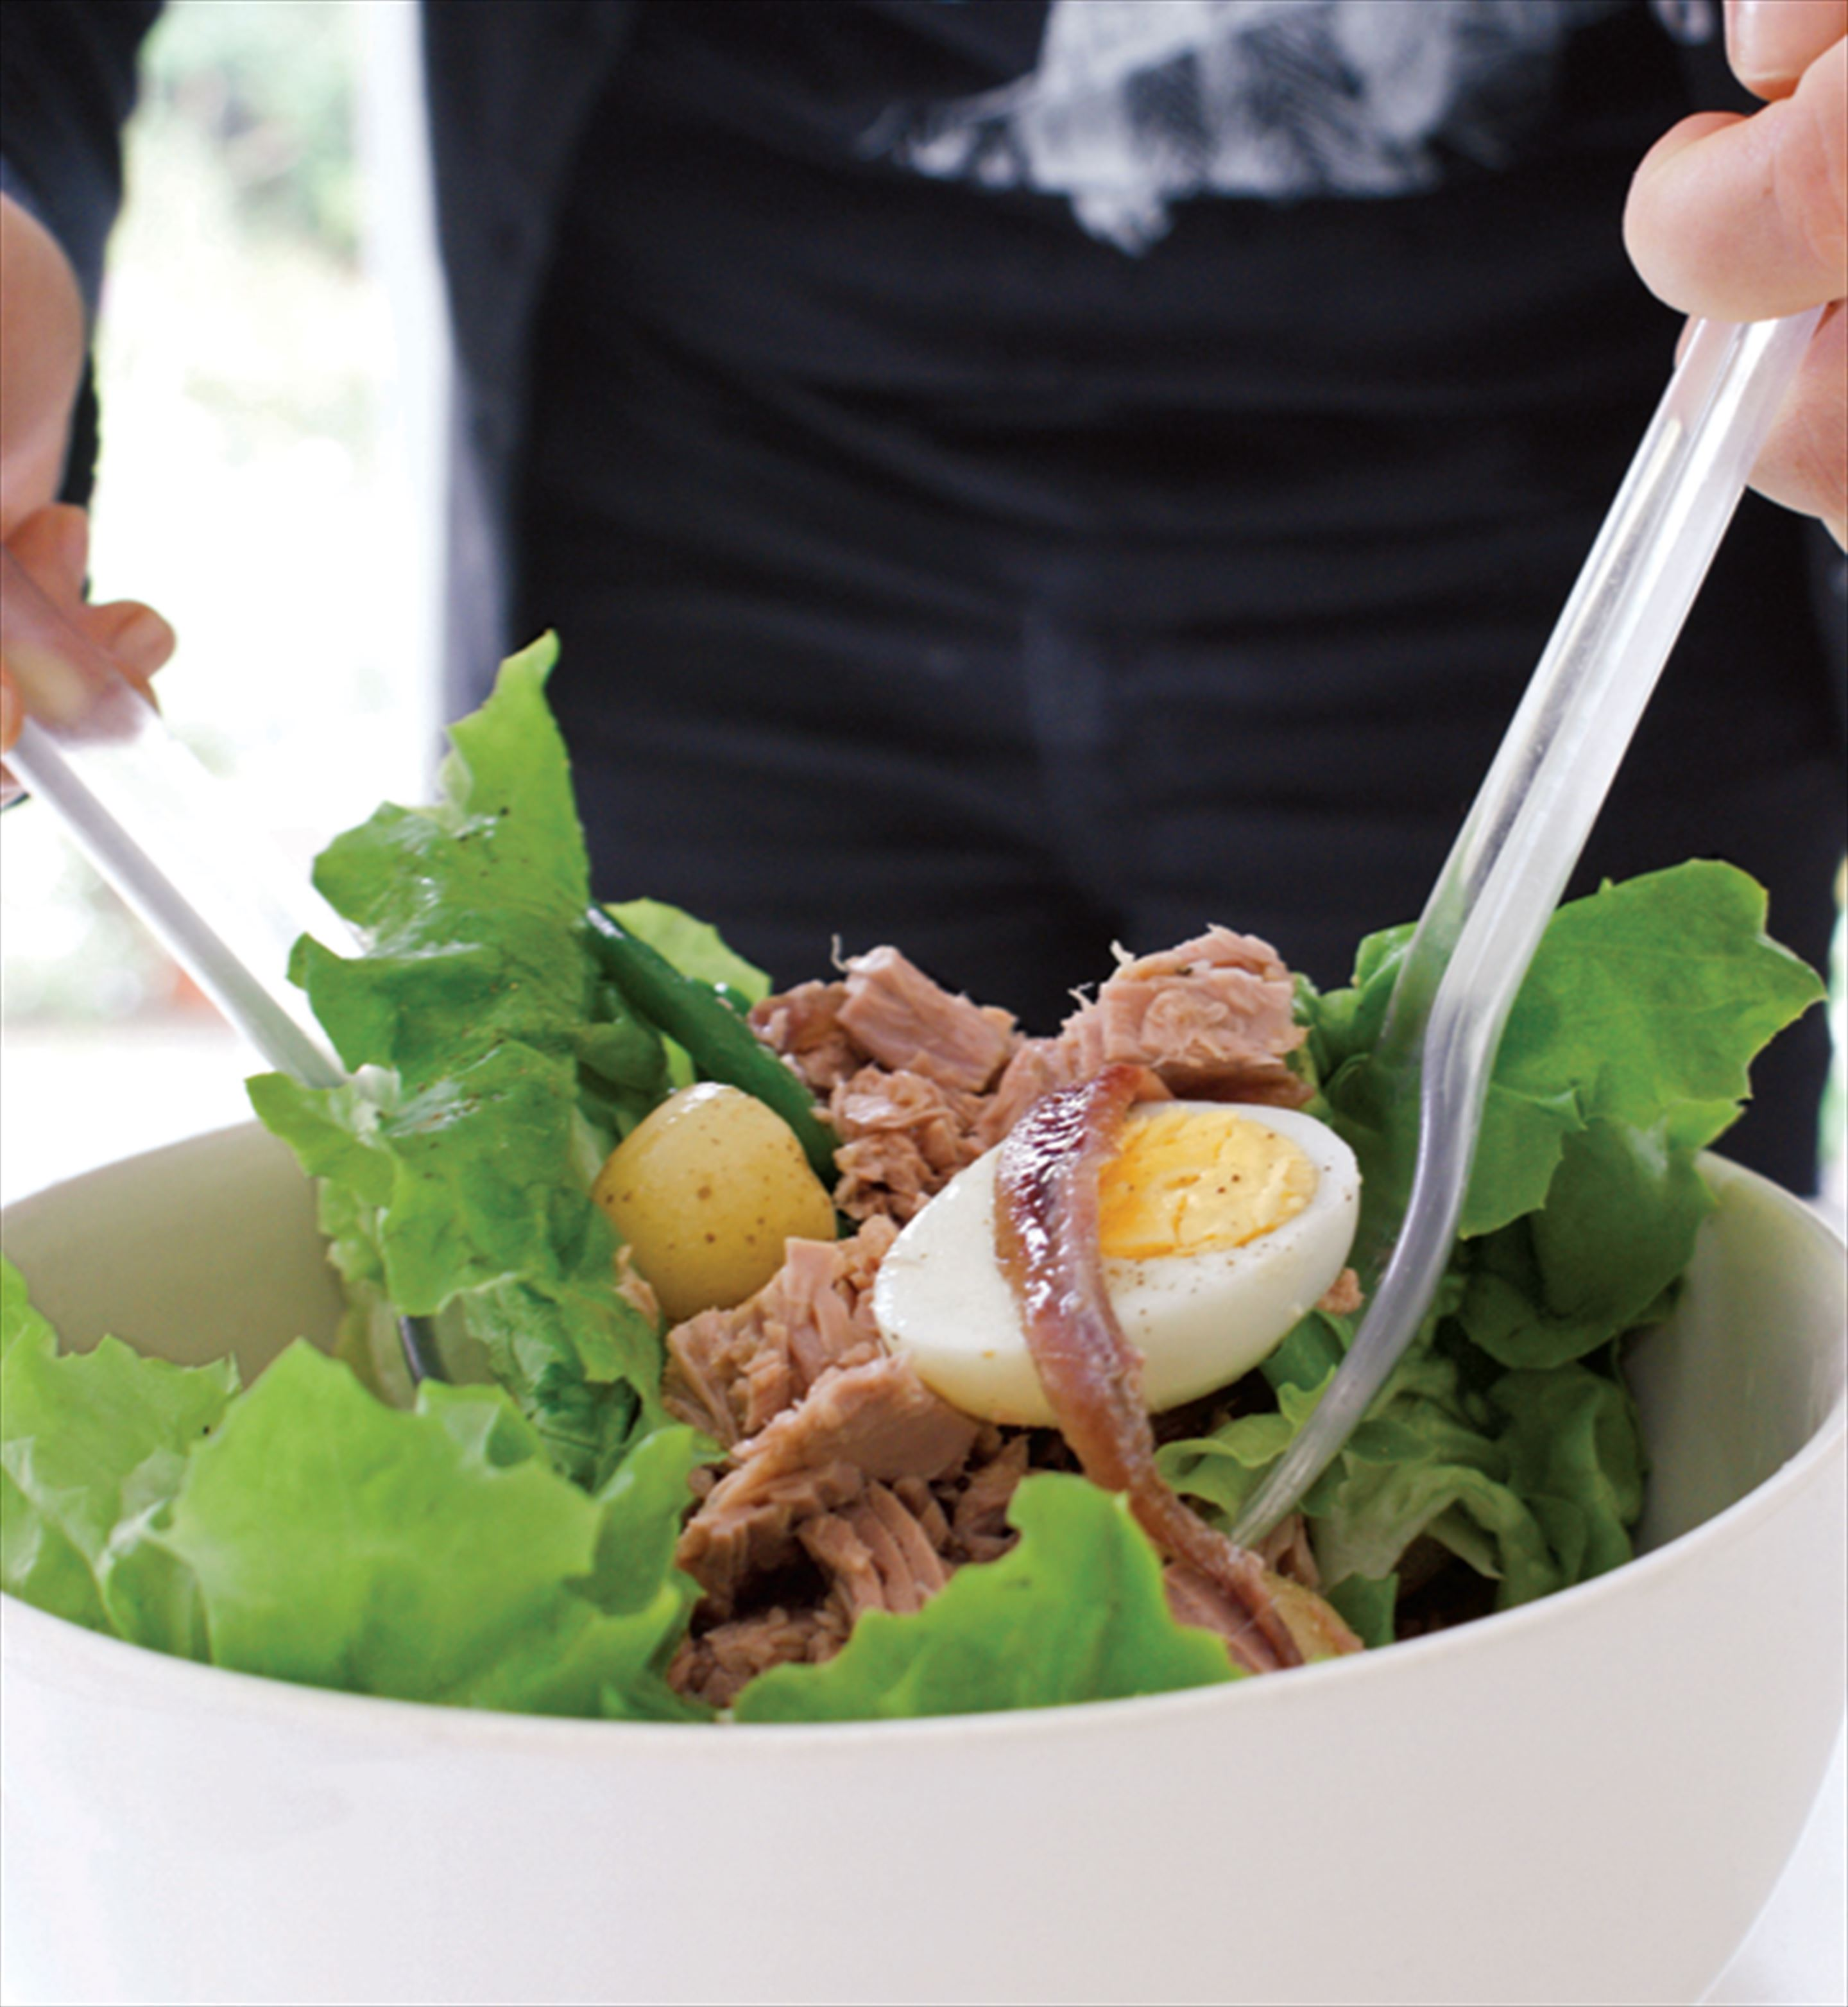 Warm salad niçoise